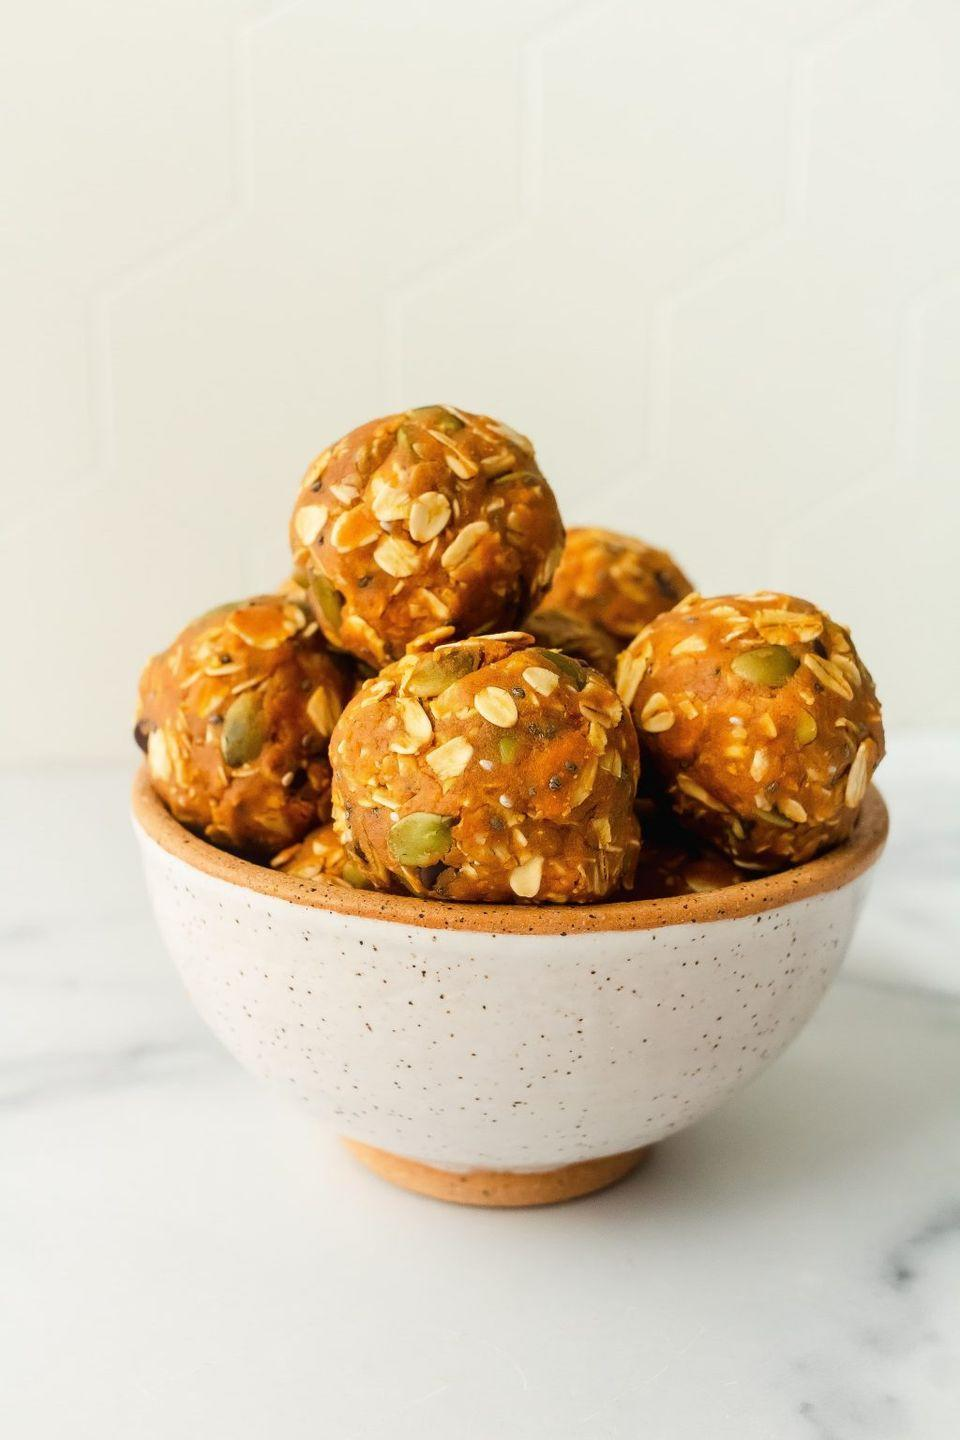 """<p>Michalczyk makes these protein balls whenever she's craving something sweet but wants to keep it healthy and filling, too. </p><p><a class=""""link rapid-noclick-resp"""" href=""""https://www.onceuponapumpkinrd.com/pumpkin-cookie-protein-balls/"""" rel=""""nofollow noopener"""" target=""""_blank"""" data-ylk=""""slk:GET THE RECIPE"""">GET THE RECIPE</a></p><p><em>Per serving: 152 calories, 8 g fat, 14 g carbs, 224 mg sodium, 5 g sugar, 10 g fiber, 7 g protein</em></p>"""